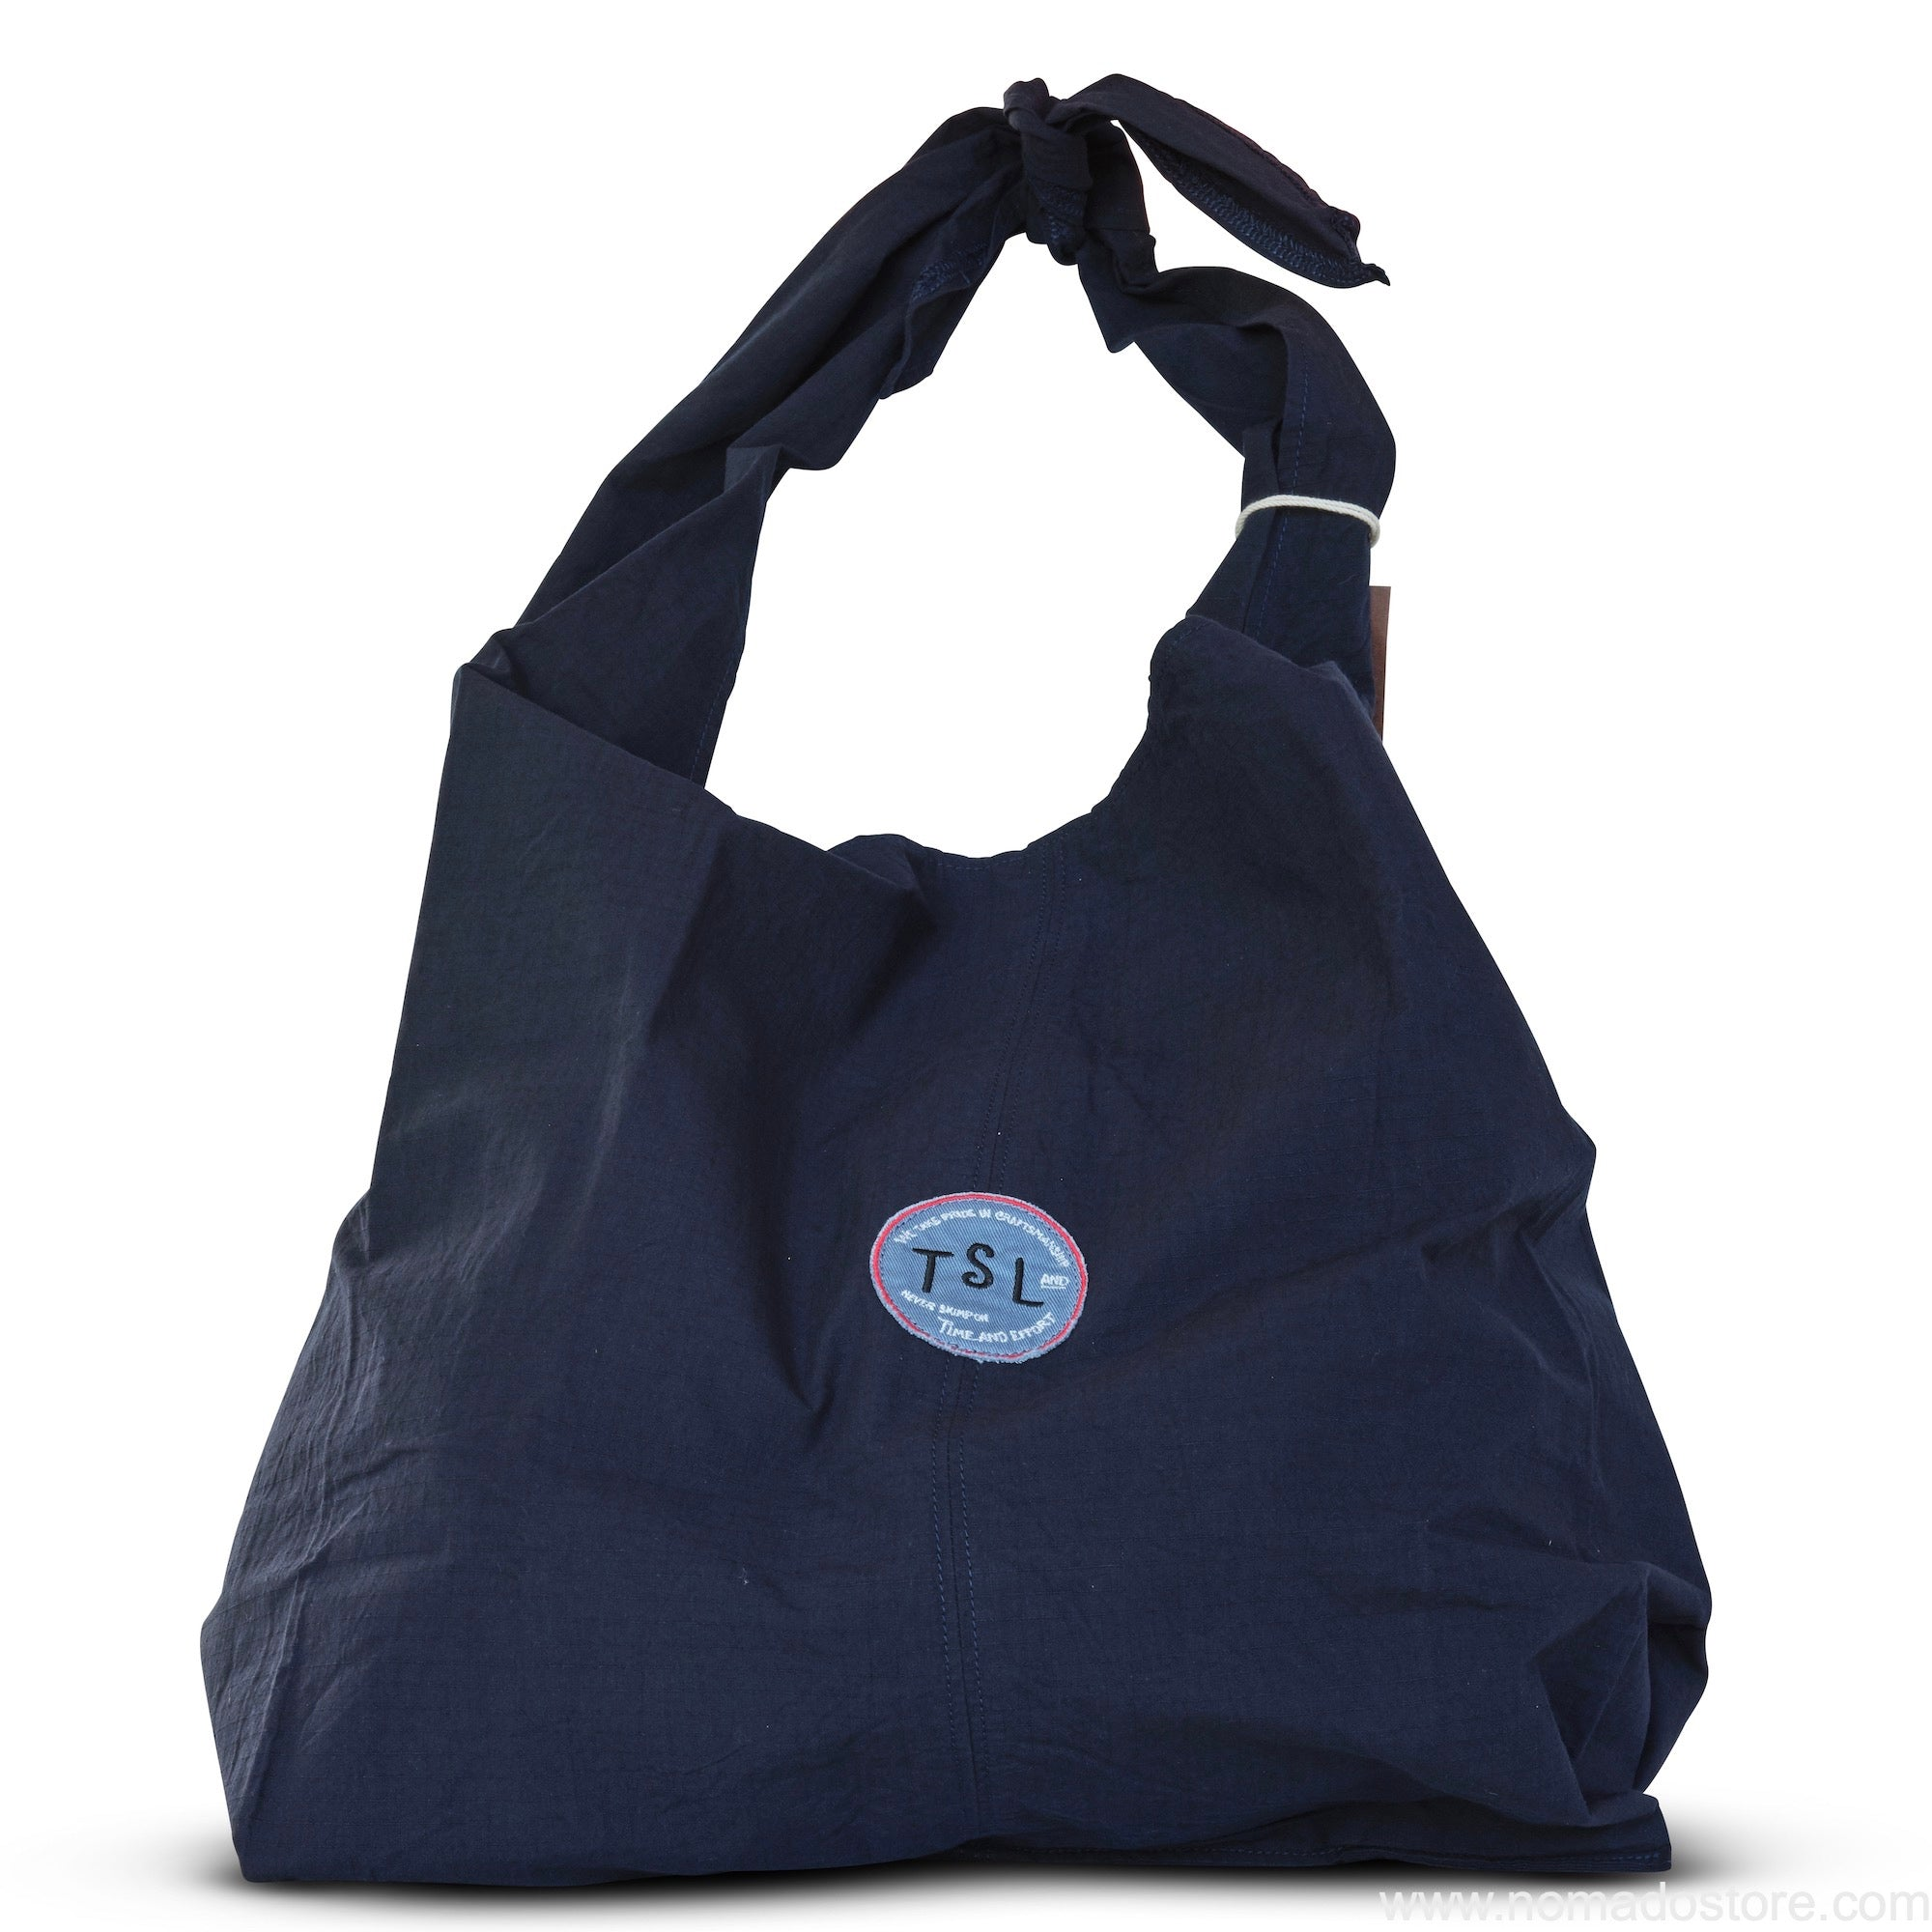 The Superior Labor Tie Shoulder Bag (navy blue) - NOMADO Store